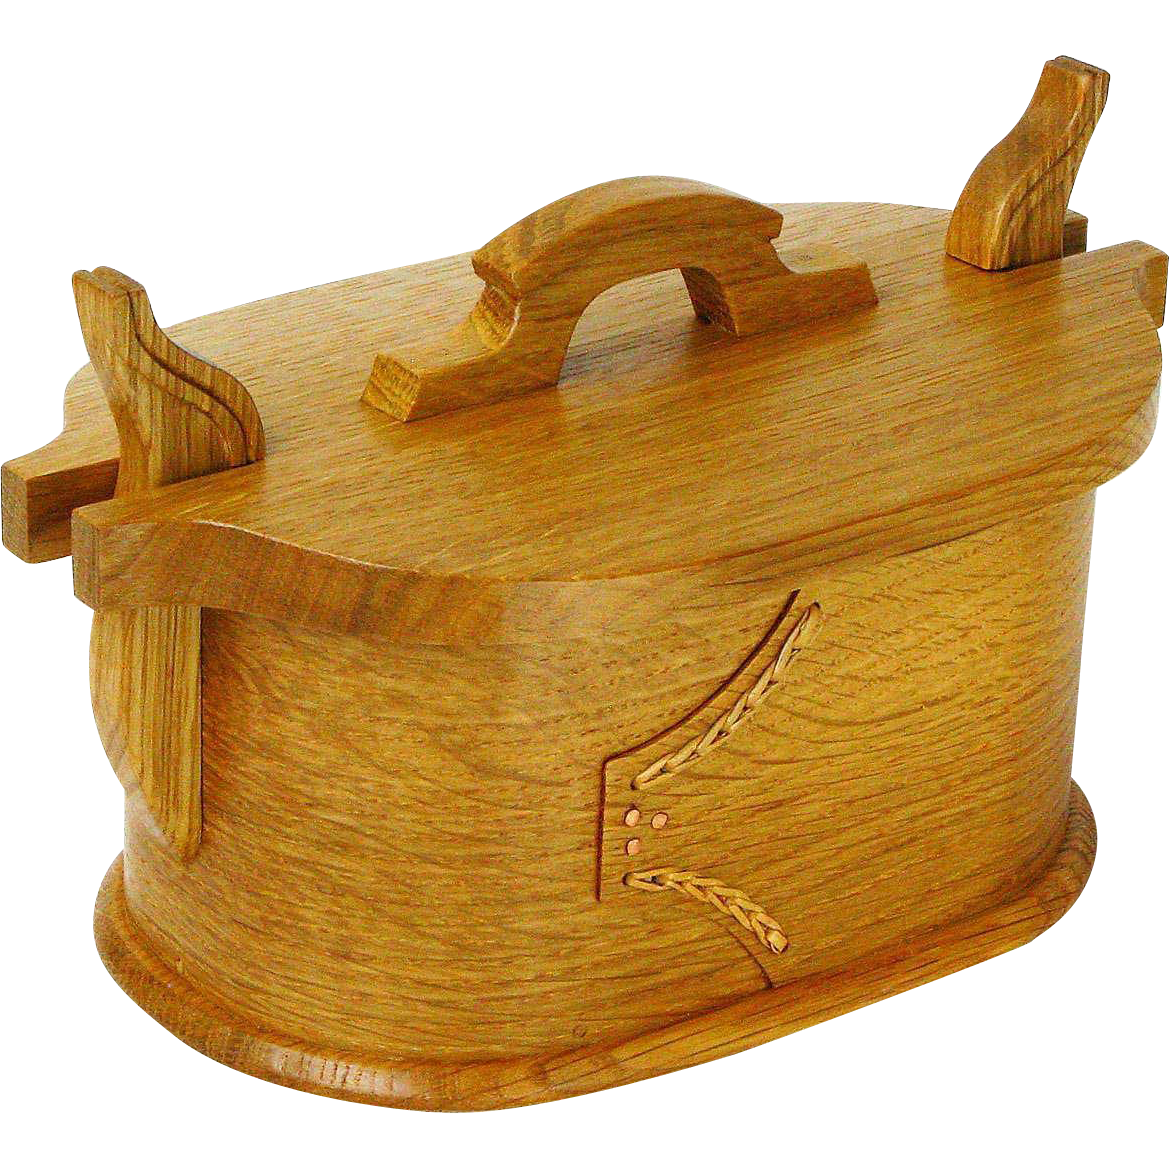 Norwegian Style Artisan Crafted White Oak Tine made at Sweetpea Cottage